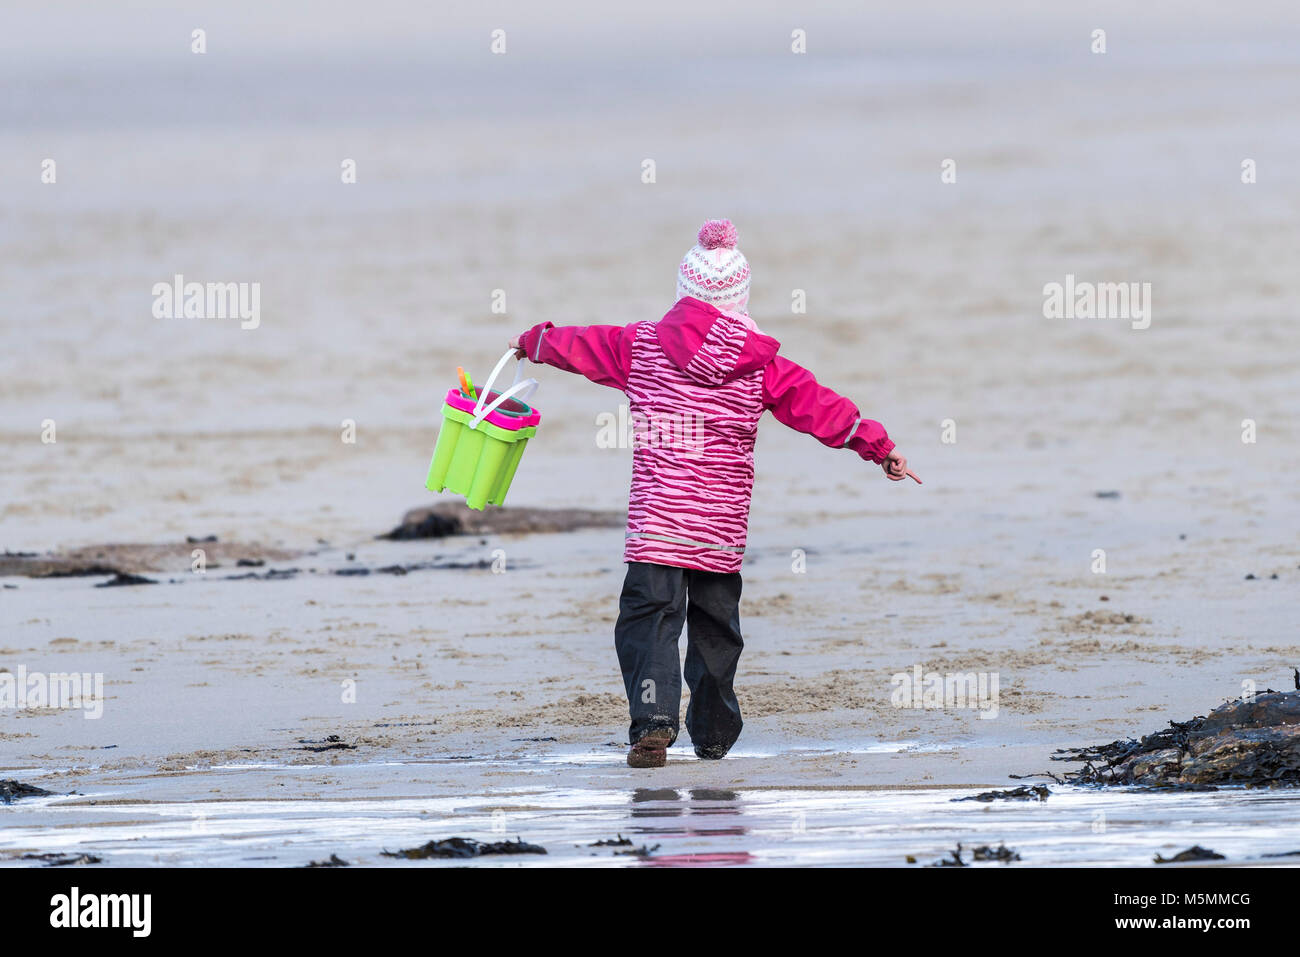 A young child playing and running around on a beach. - Stock Image